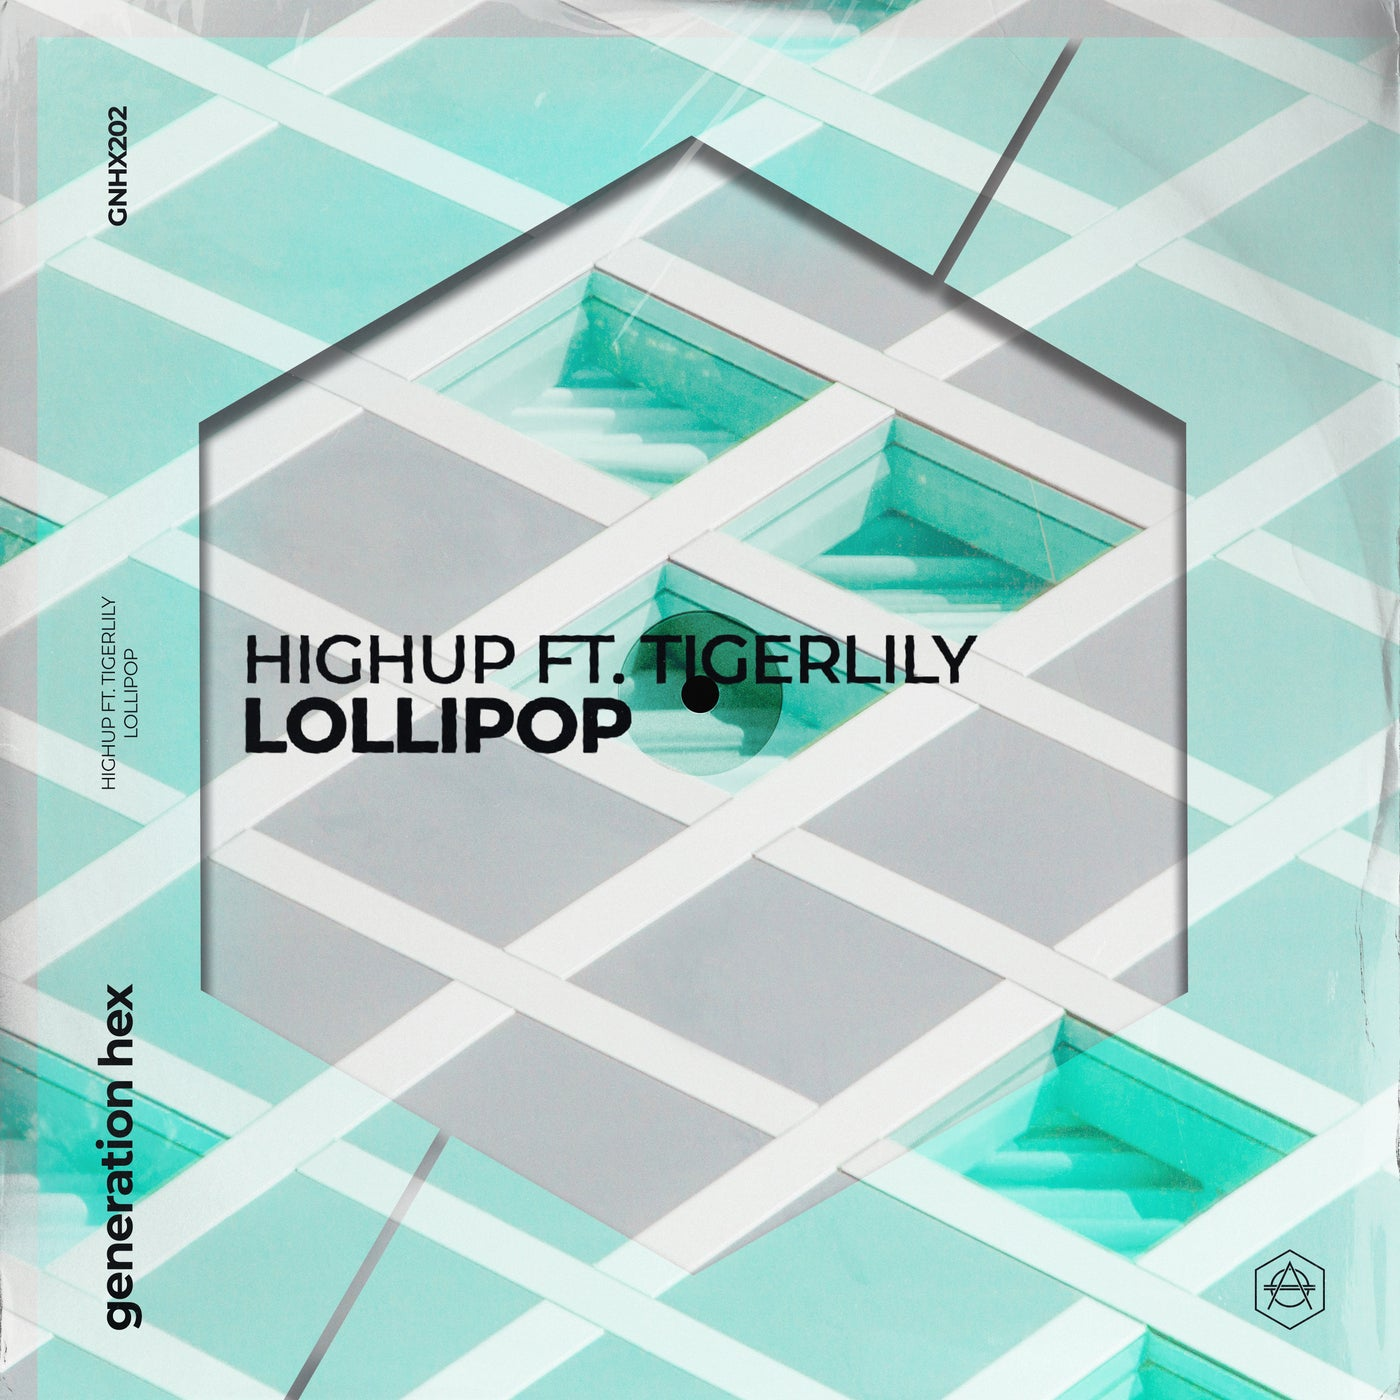 Lollipop feat. Tigerlily (Extended Mix)